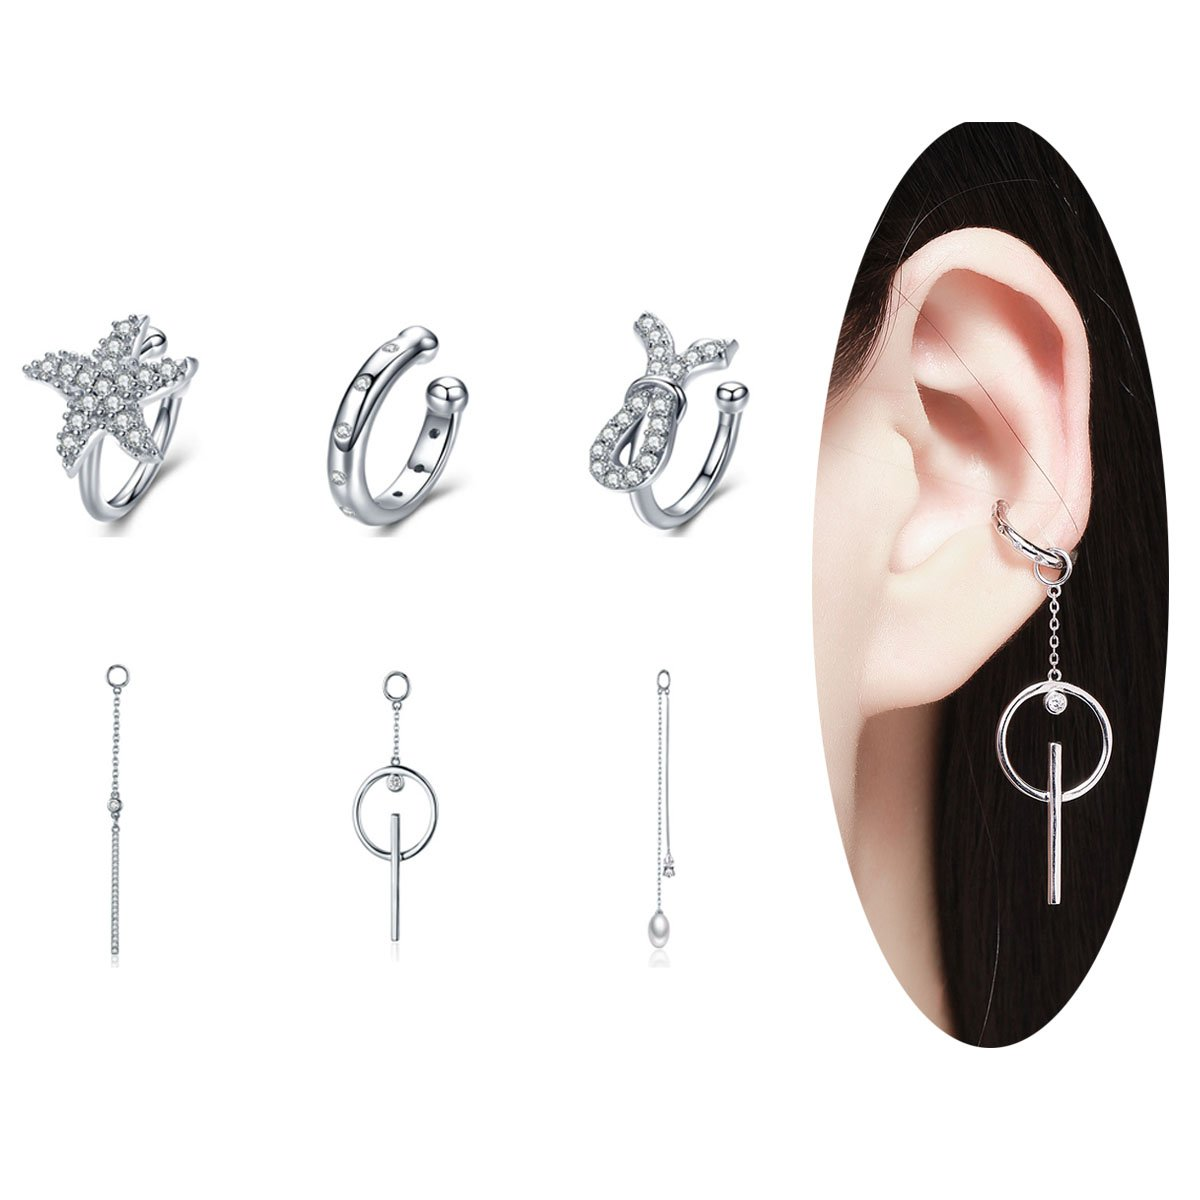 BAMOER 925 Sterling Silver DIY Ear Cuff Cartilage Earrings Set for Women White Gold Plated Fashion Wrap Earrings ECE085+GiftBag